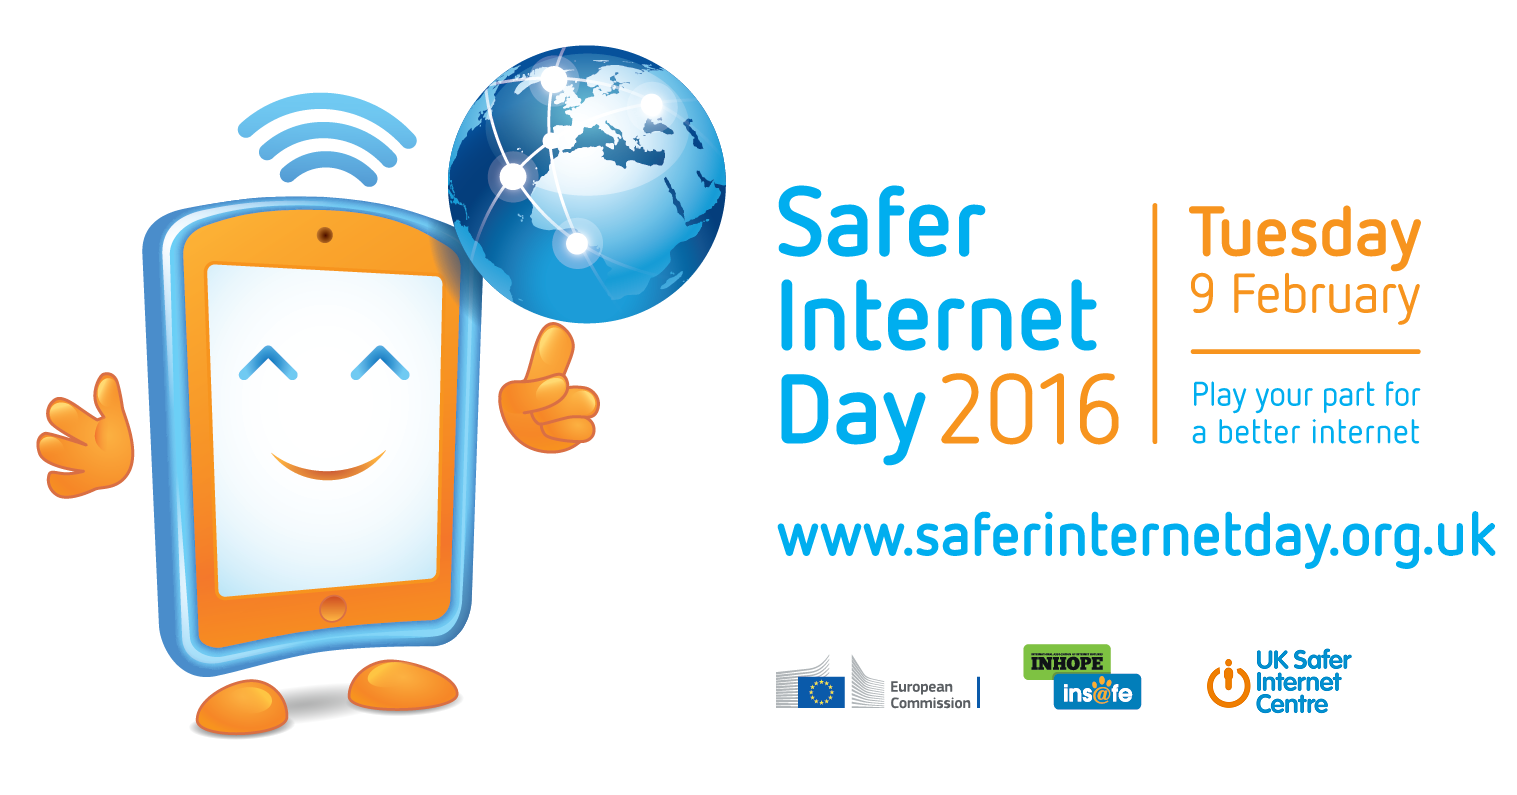 Safer Internet Day - Click to view their website.